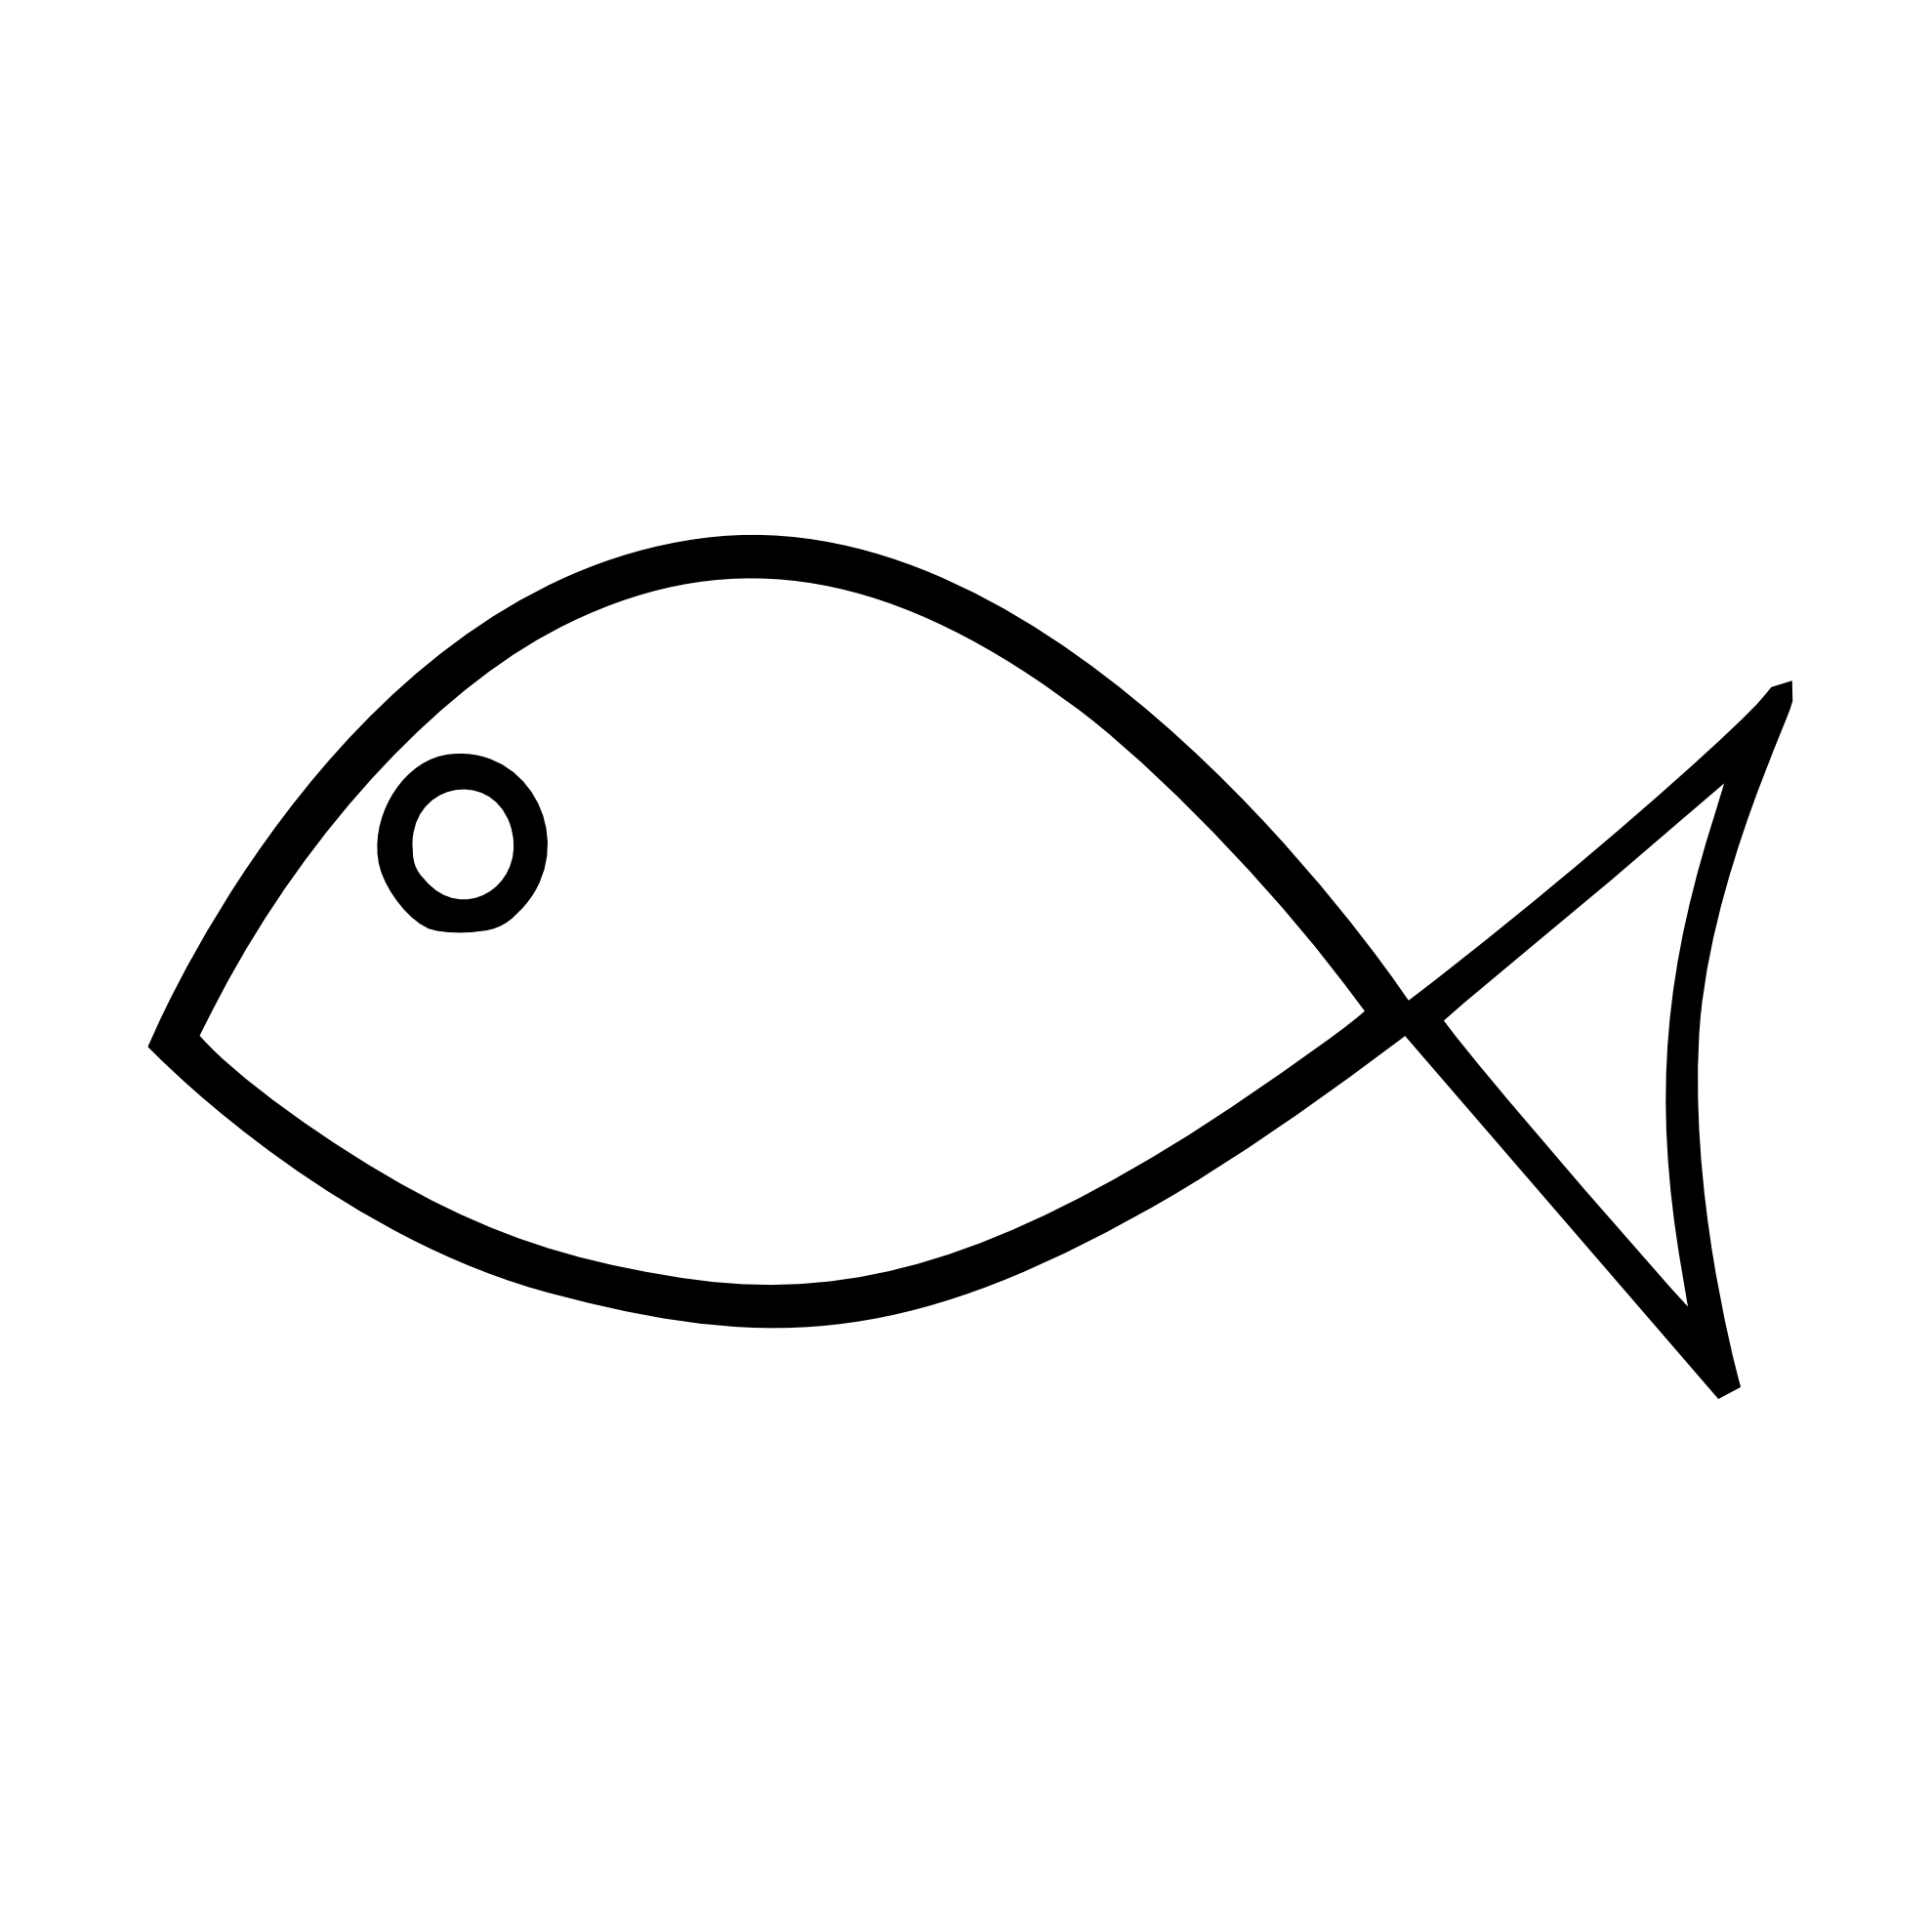 Religious fish clipart image black and white stock fish drawings - Google Search | Loon Love | Pinterest | Fish ... image black and white stock